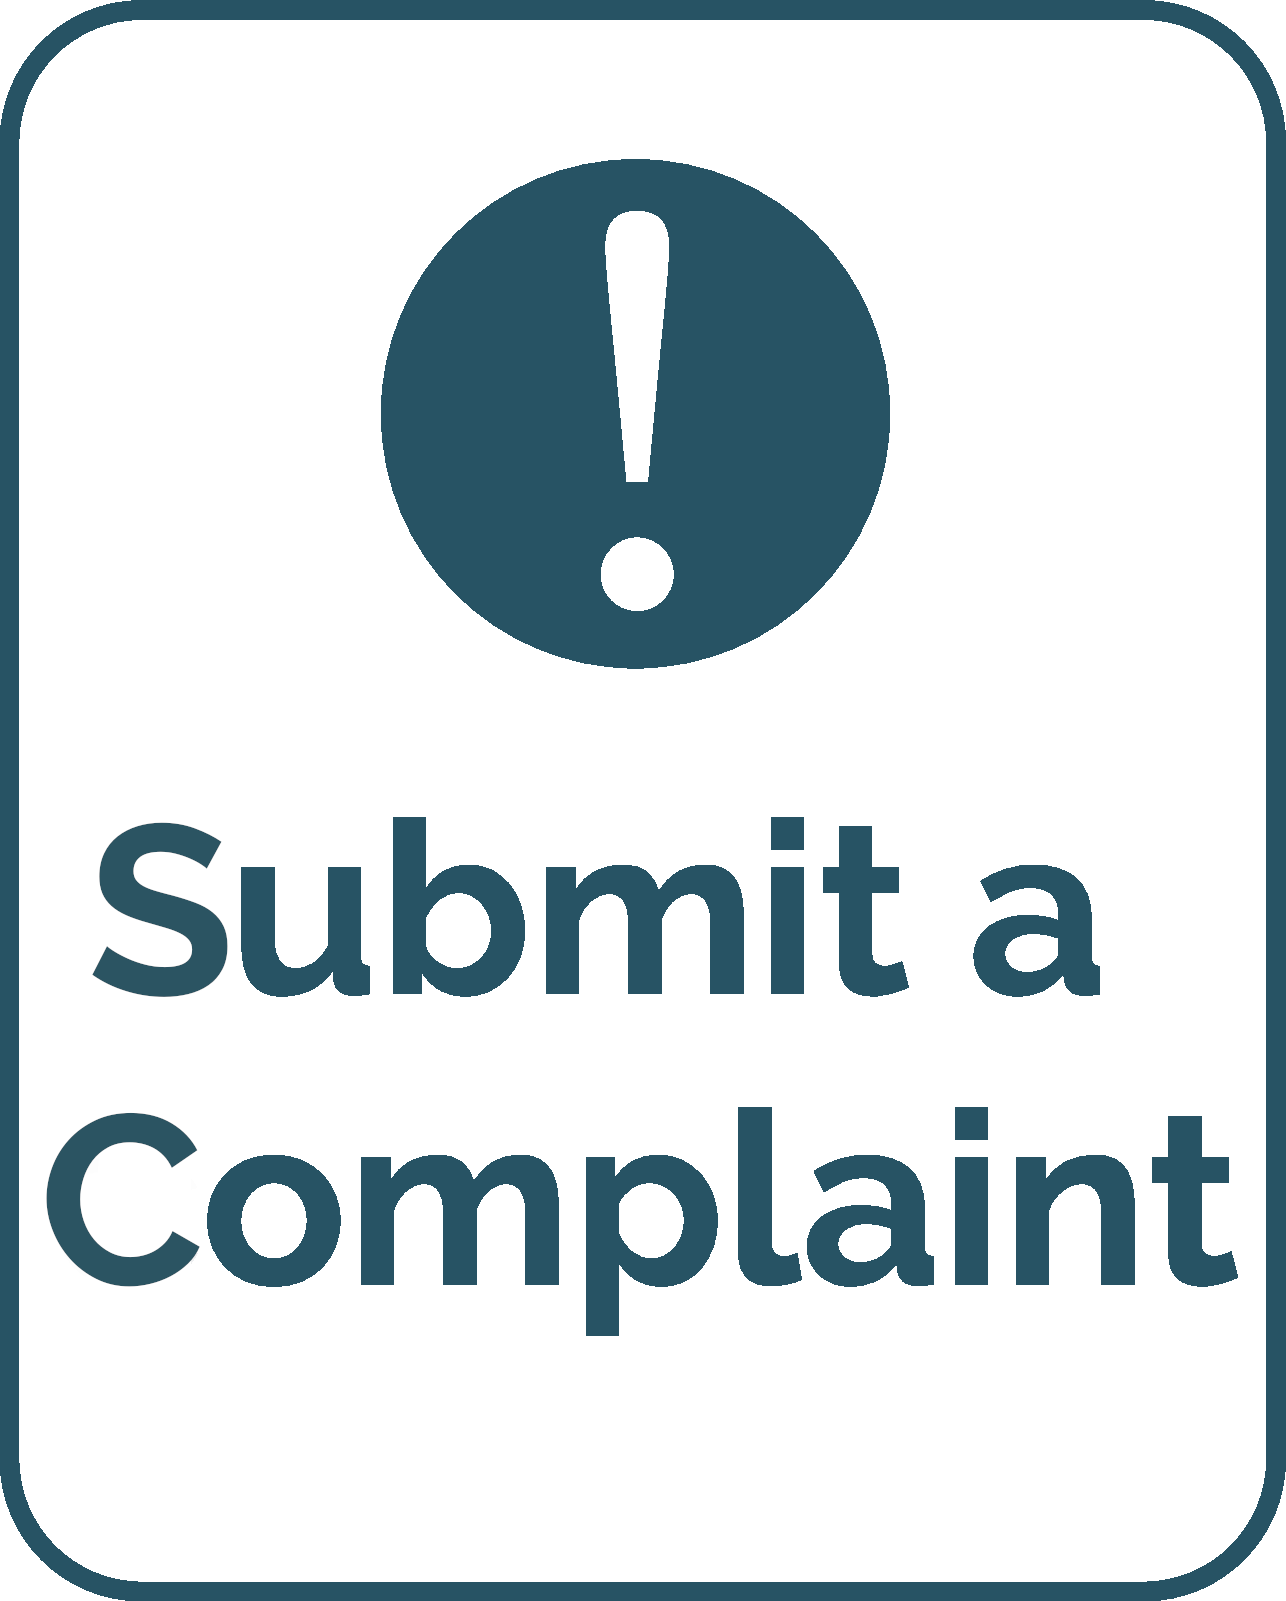 submit a complaint logo